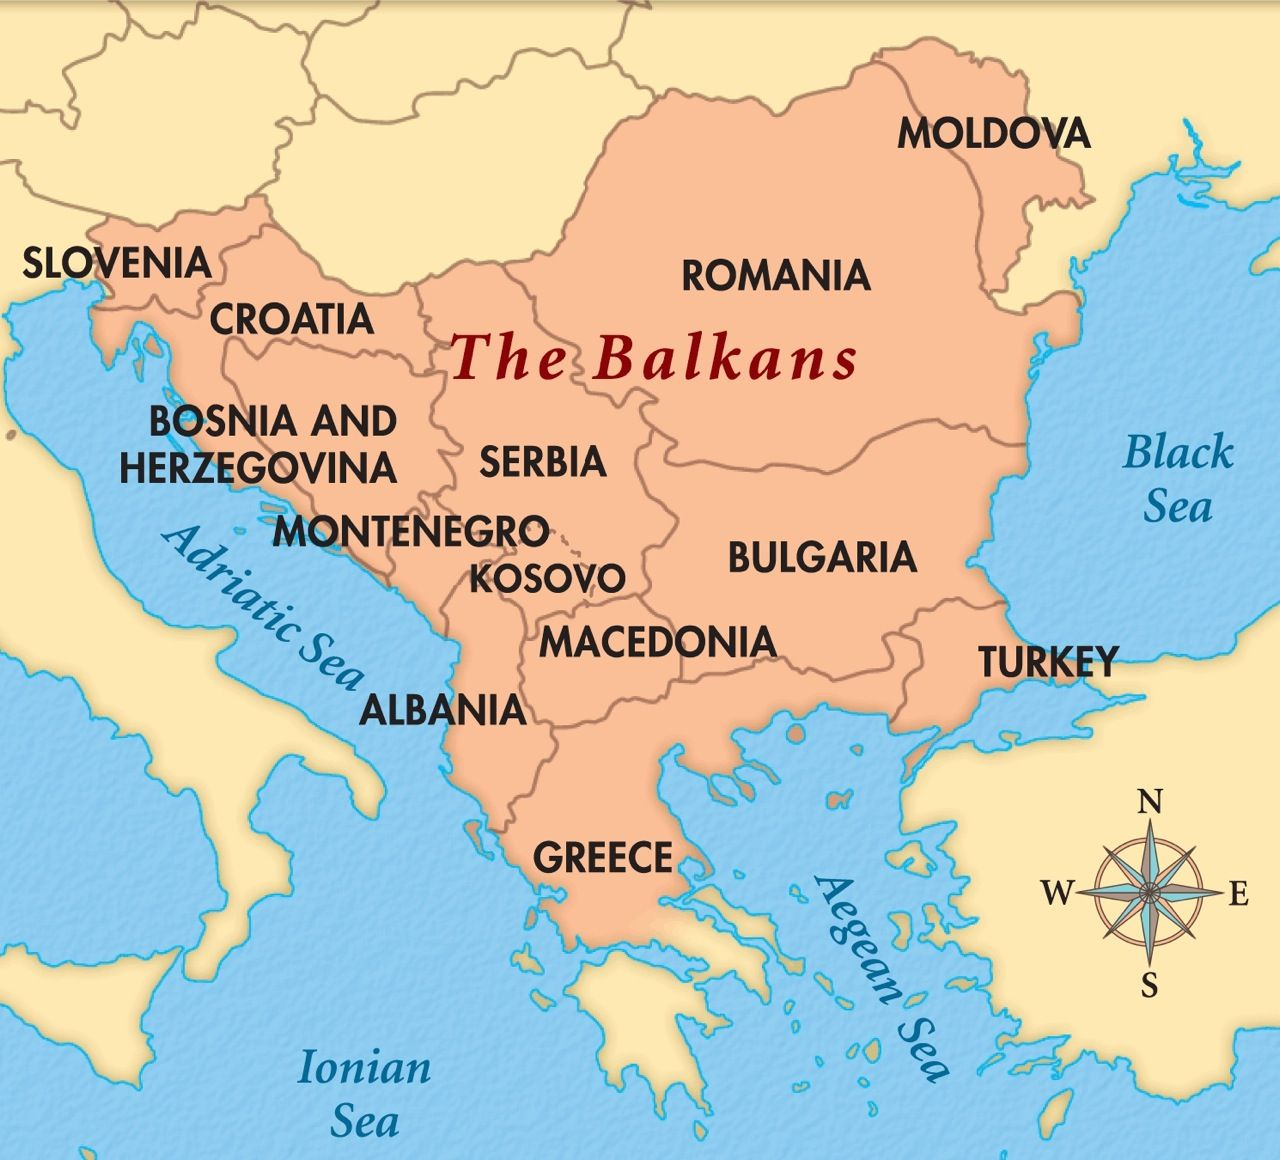 Balkans map. Territories whose borders lie entirely within the